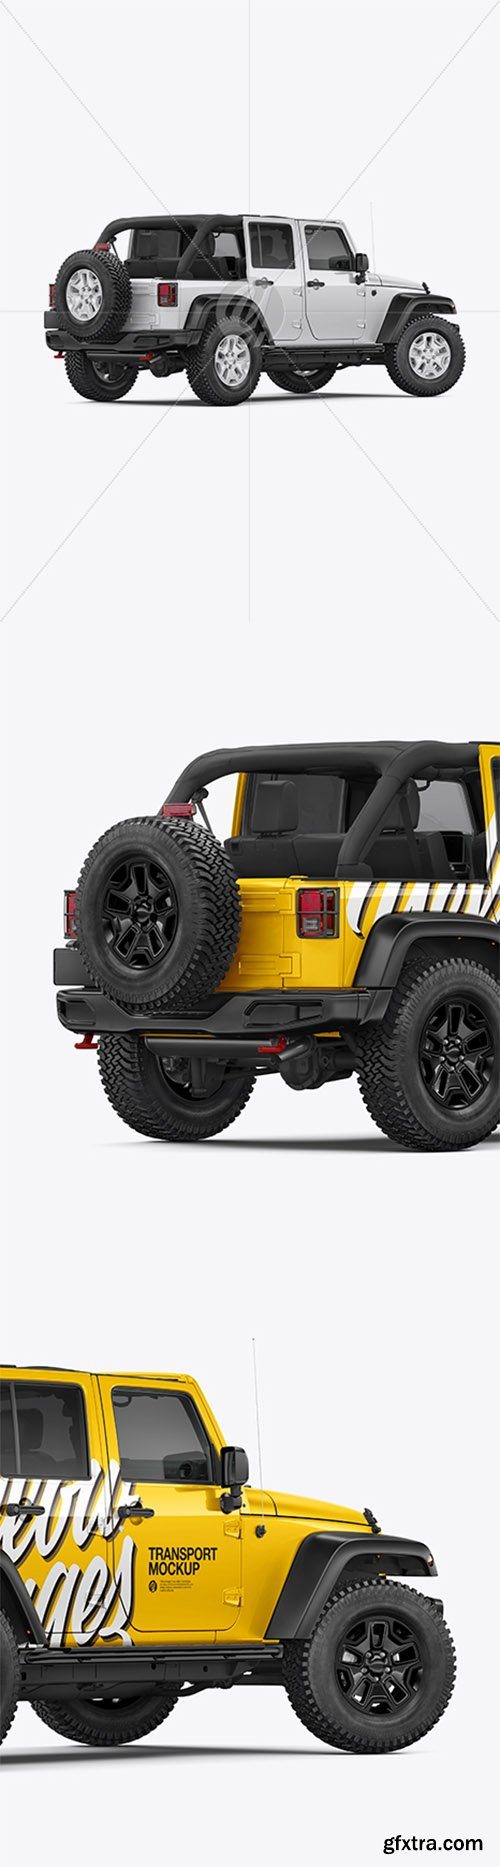 Off-Road SUV Open Roof Mockup - Back Half Side View 41105